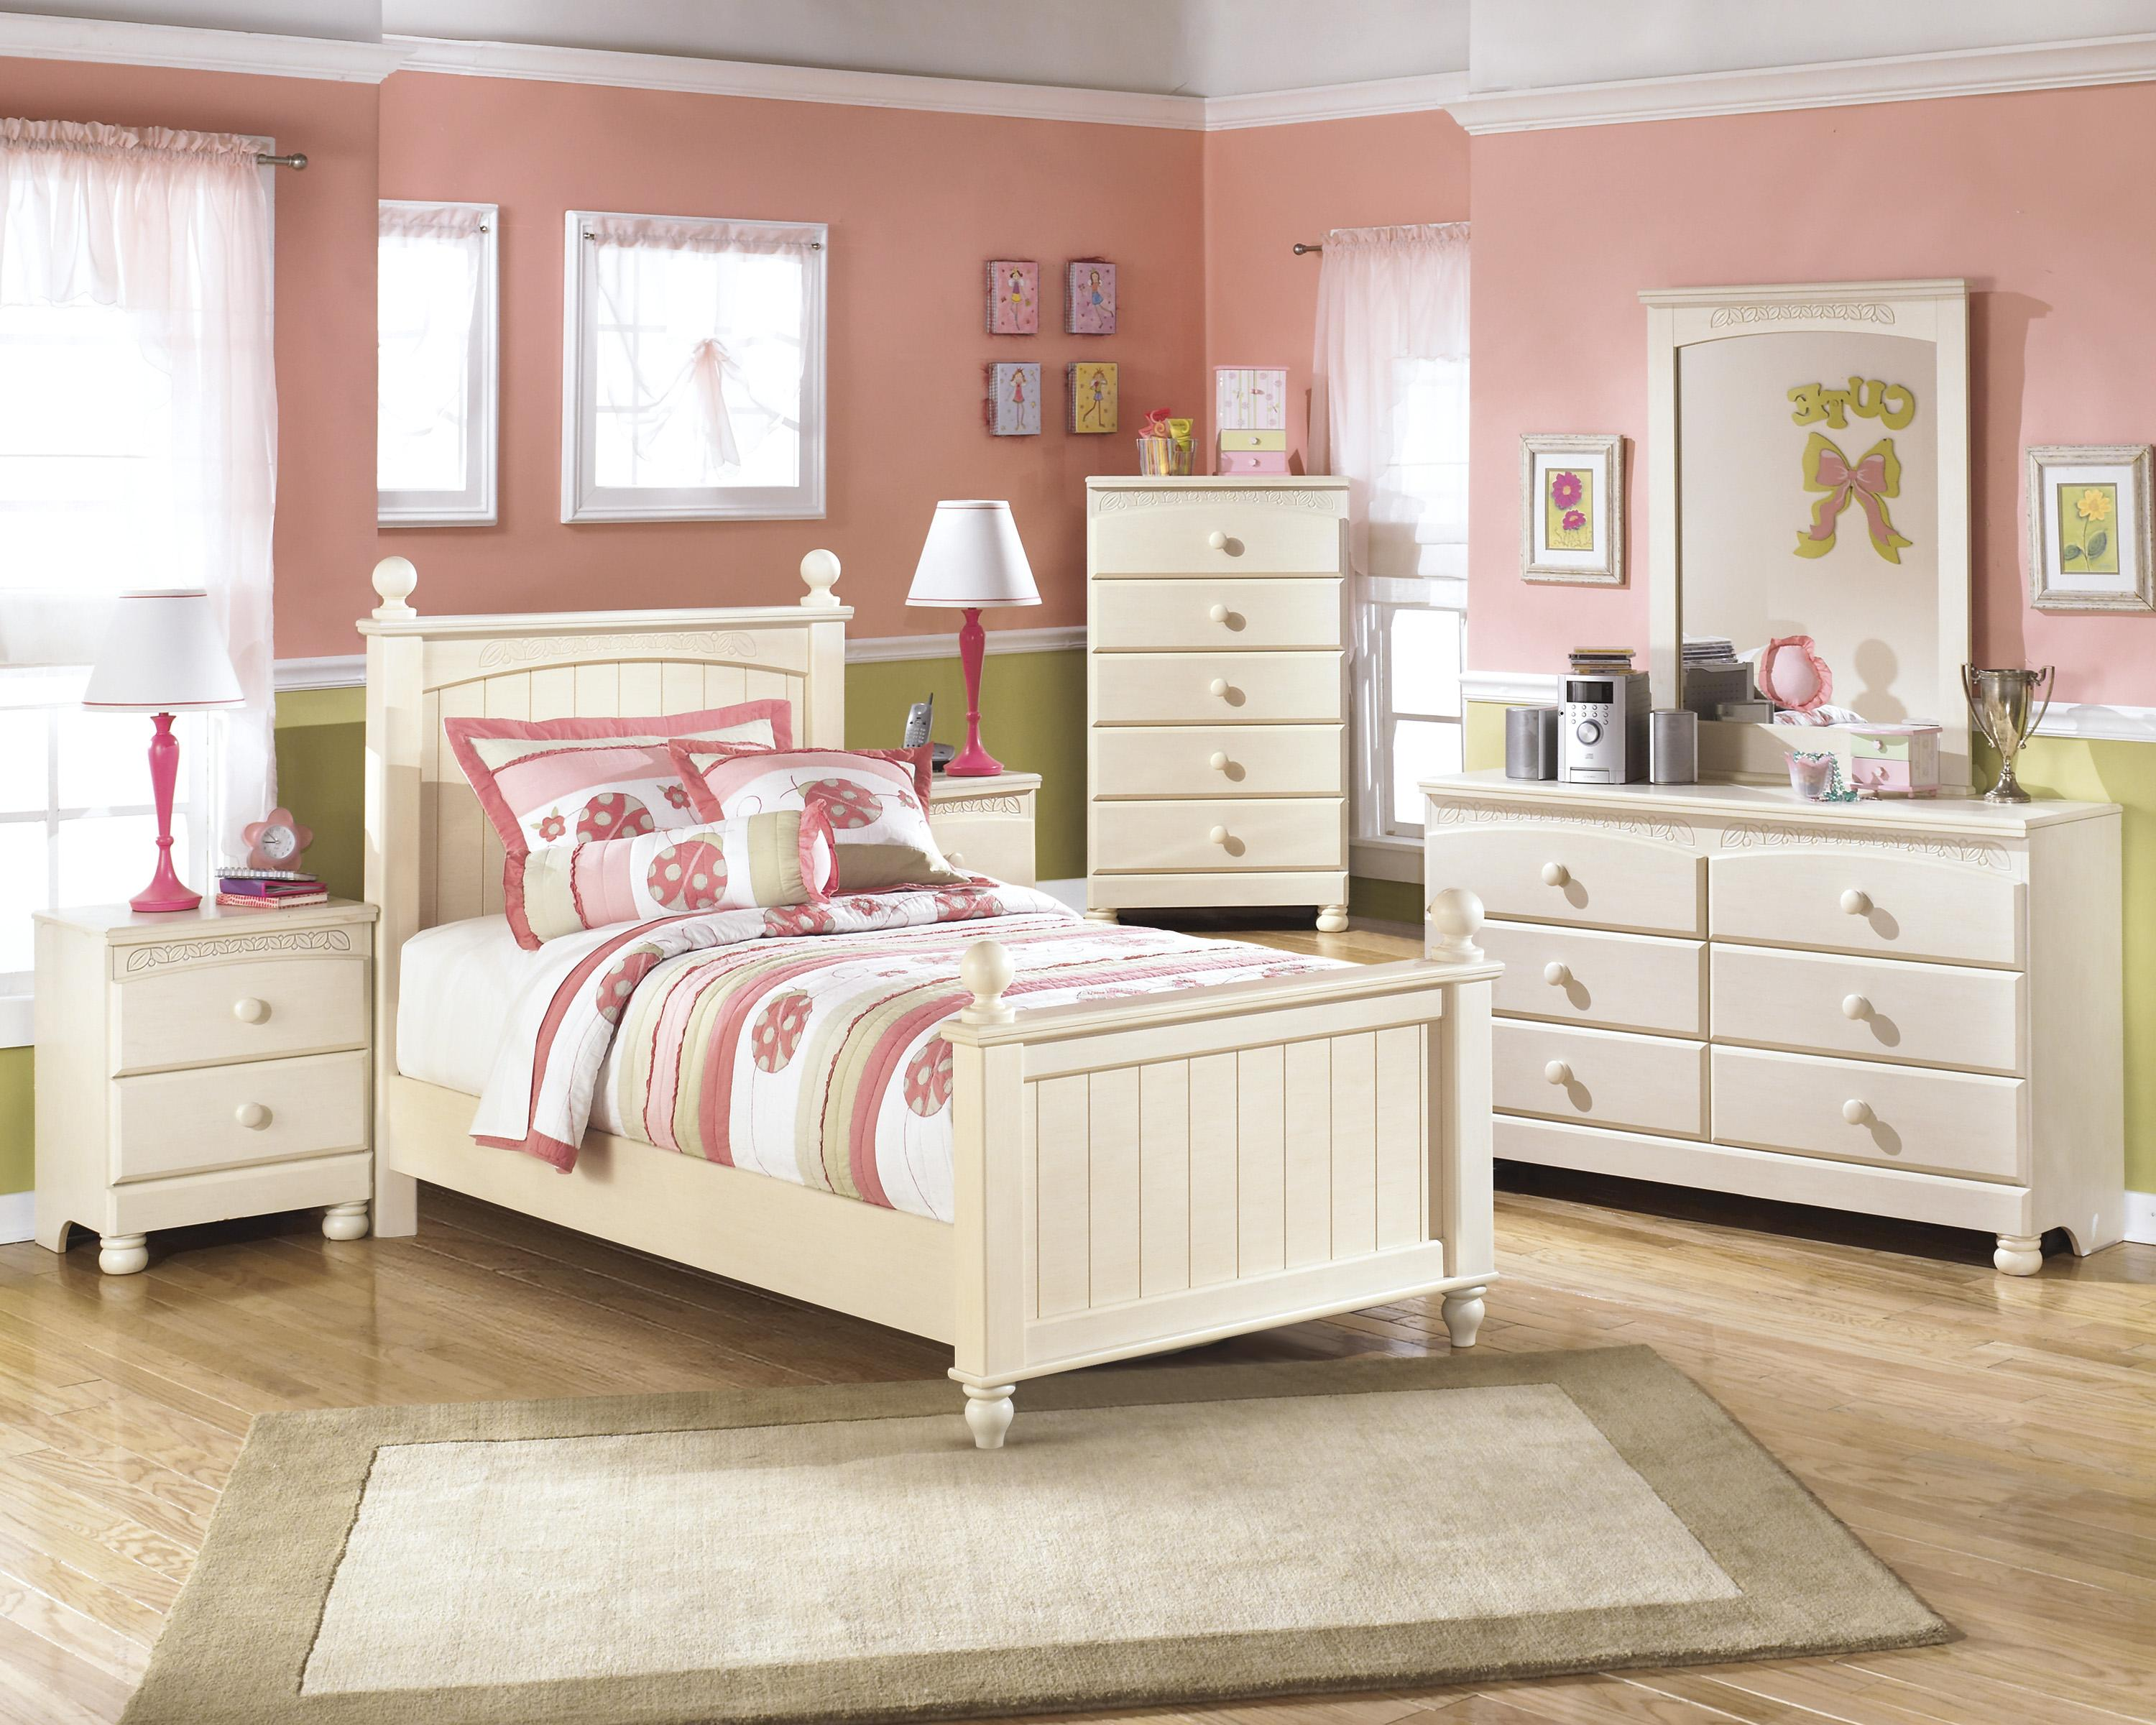 Signature Design by Ashley Cottage Retreat Twin Bedroom Group - Item Number: B213 T Bedroom Group 4